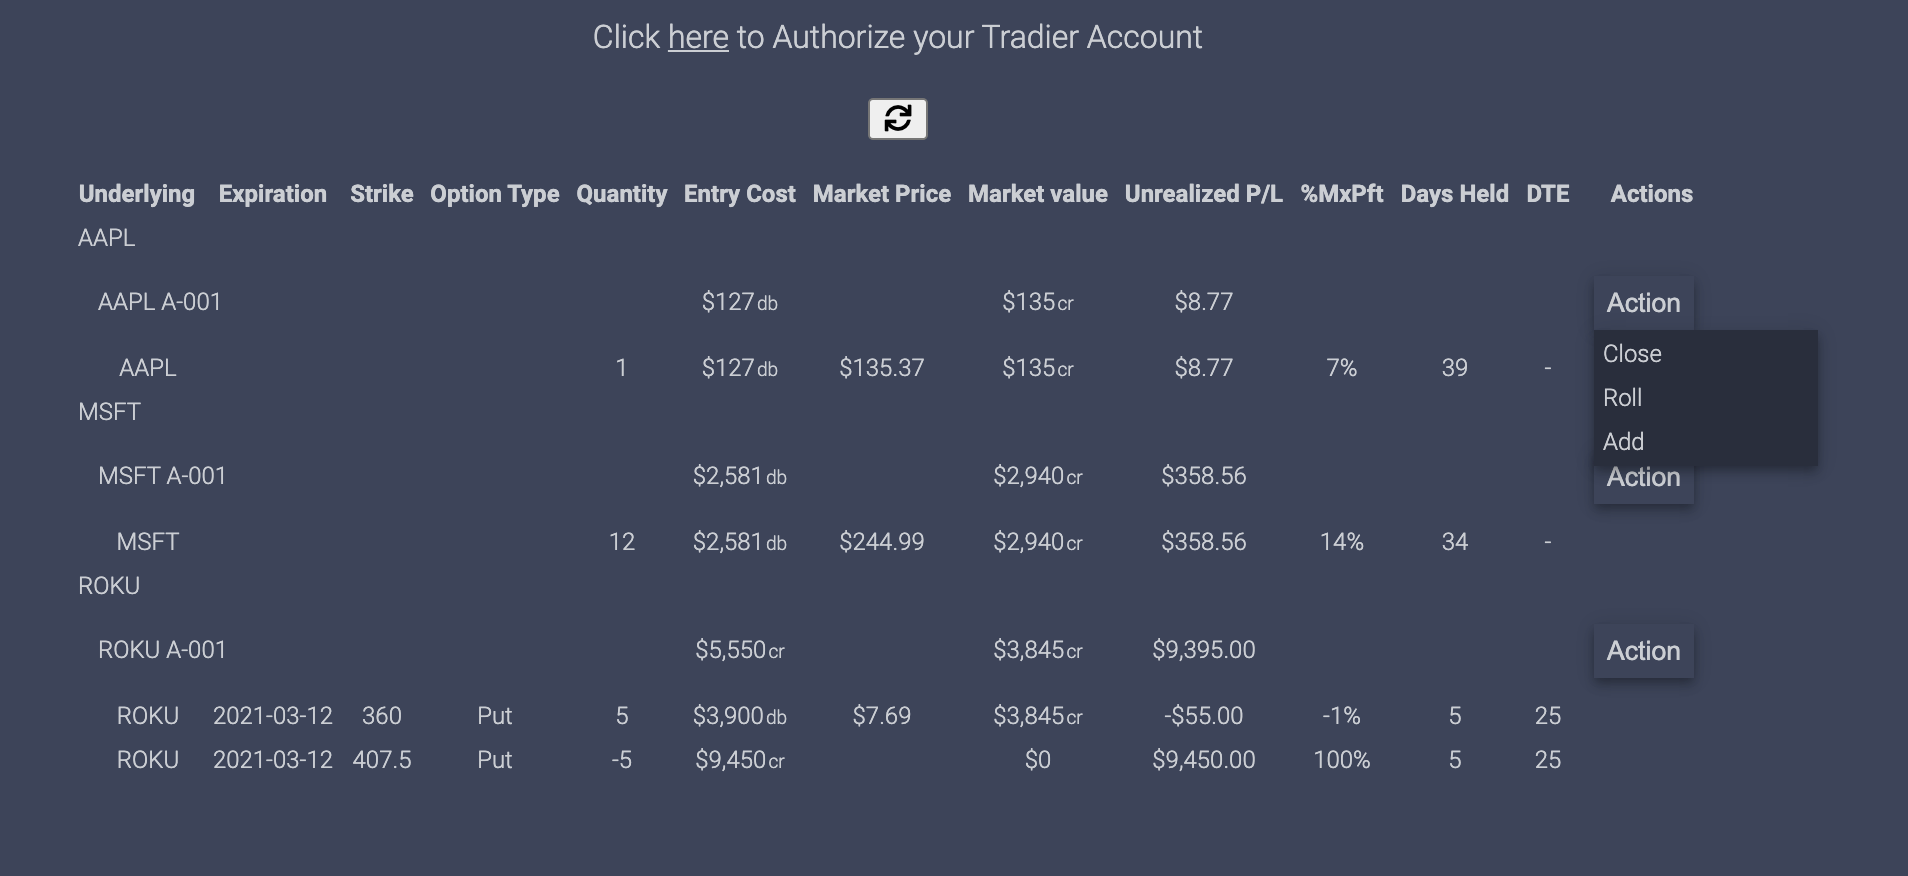 eDeltaPro group options trades by strategies